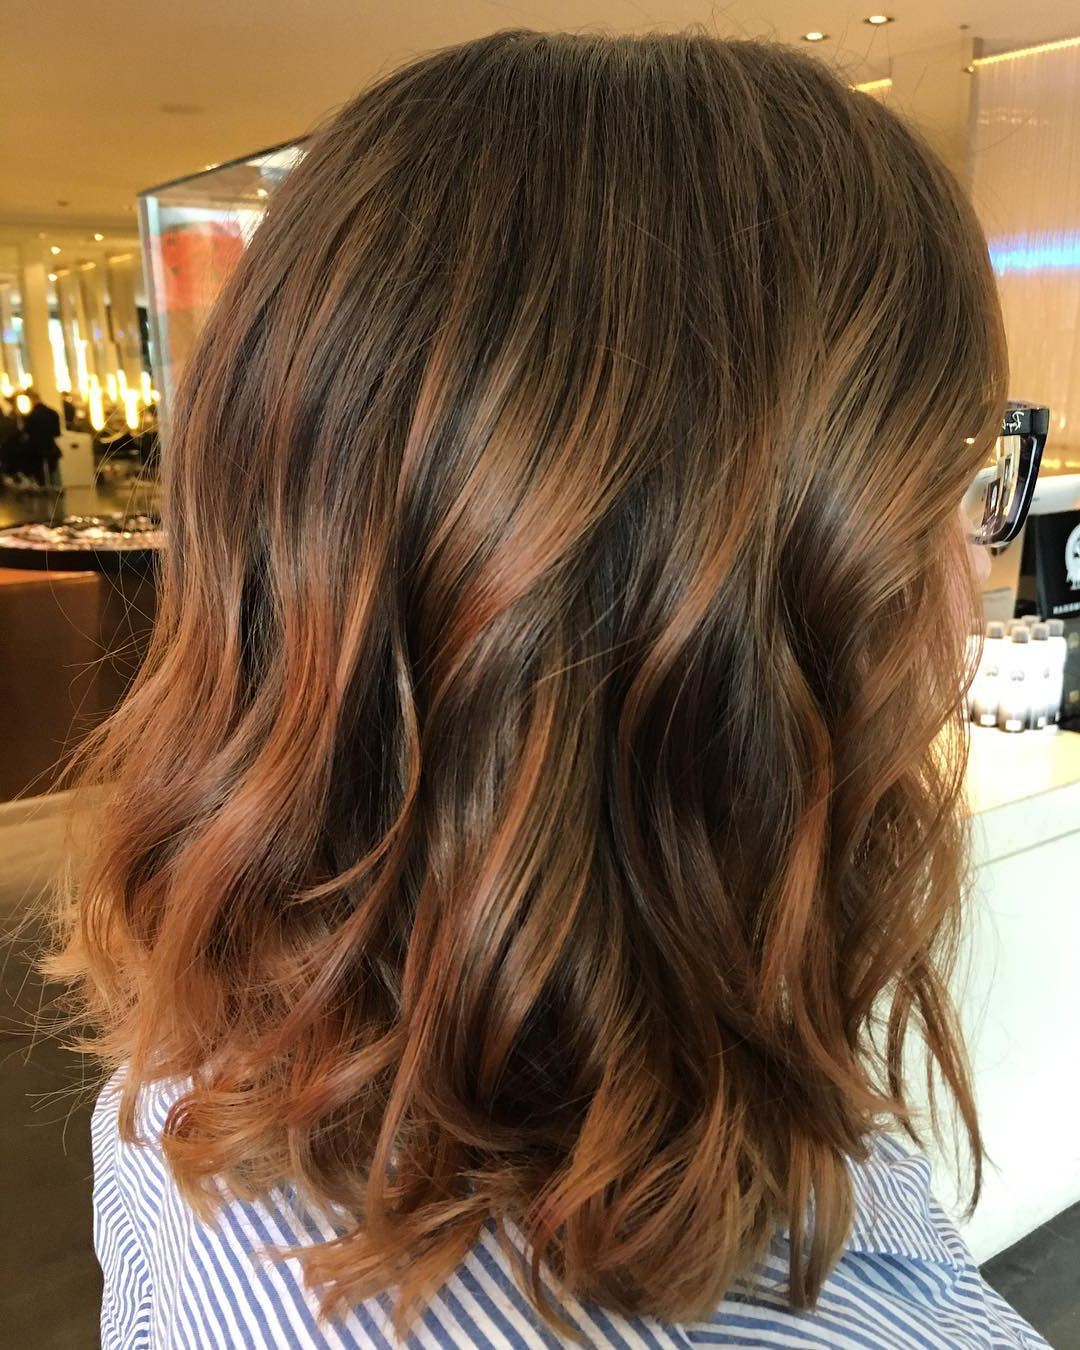 Widely Used Medium Medium Hairstyles With Layers Intended For 25 Exciting Medium Length Layered Haircuts – Popular Haircuts (View 19 of 20)